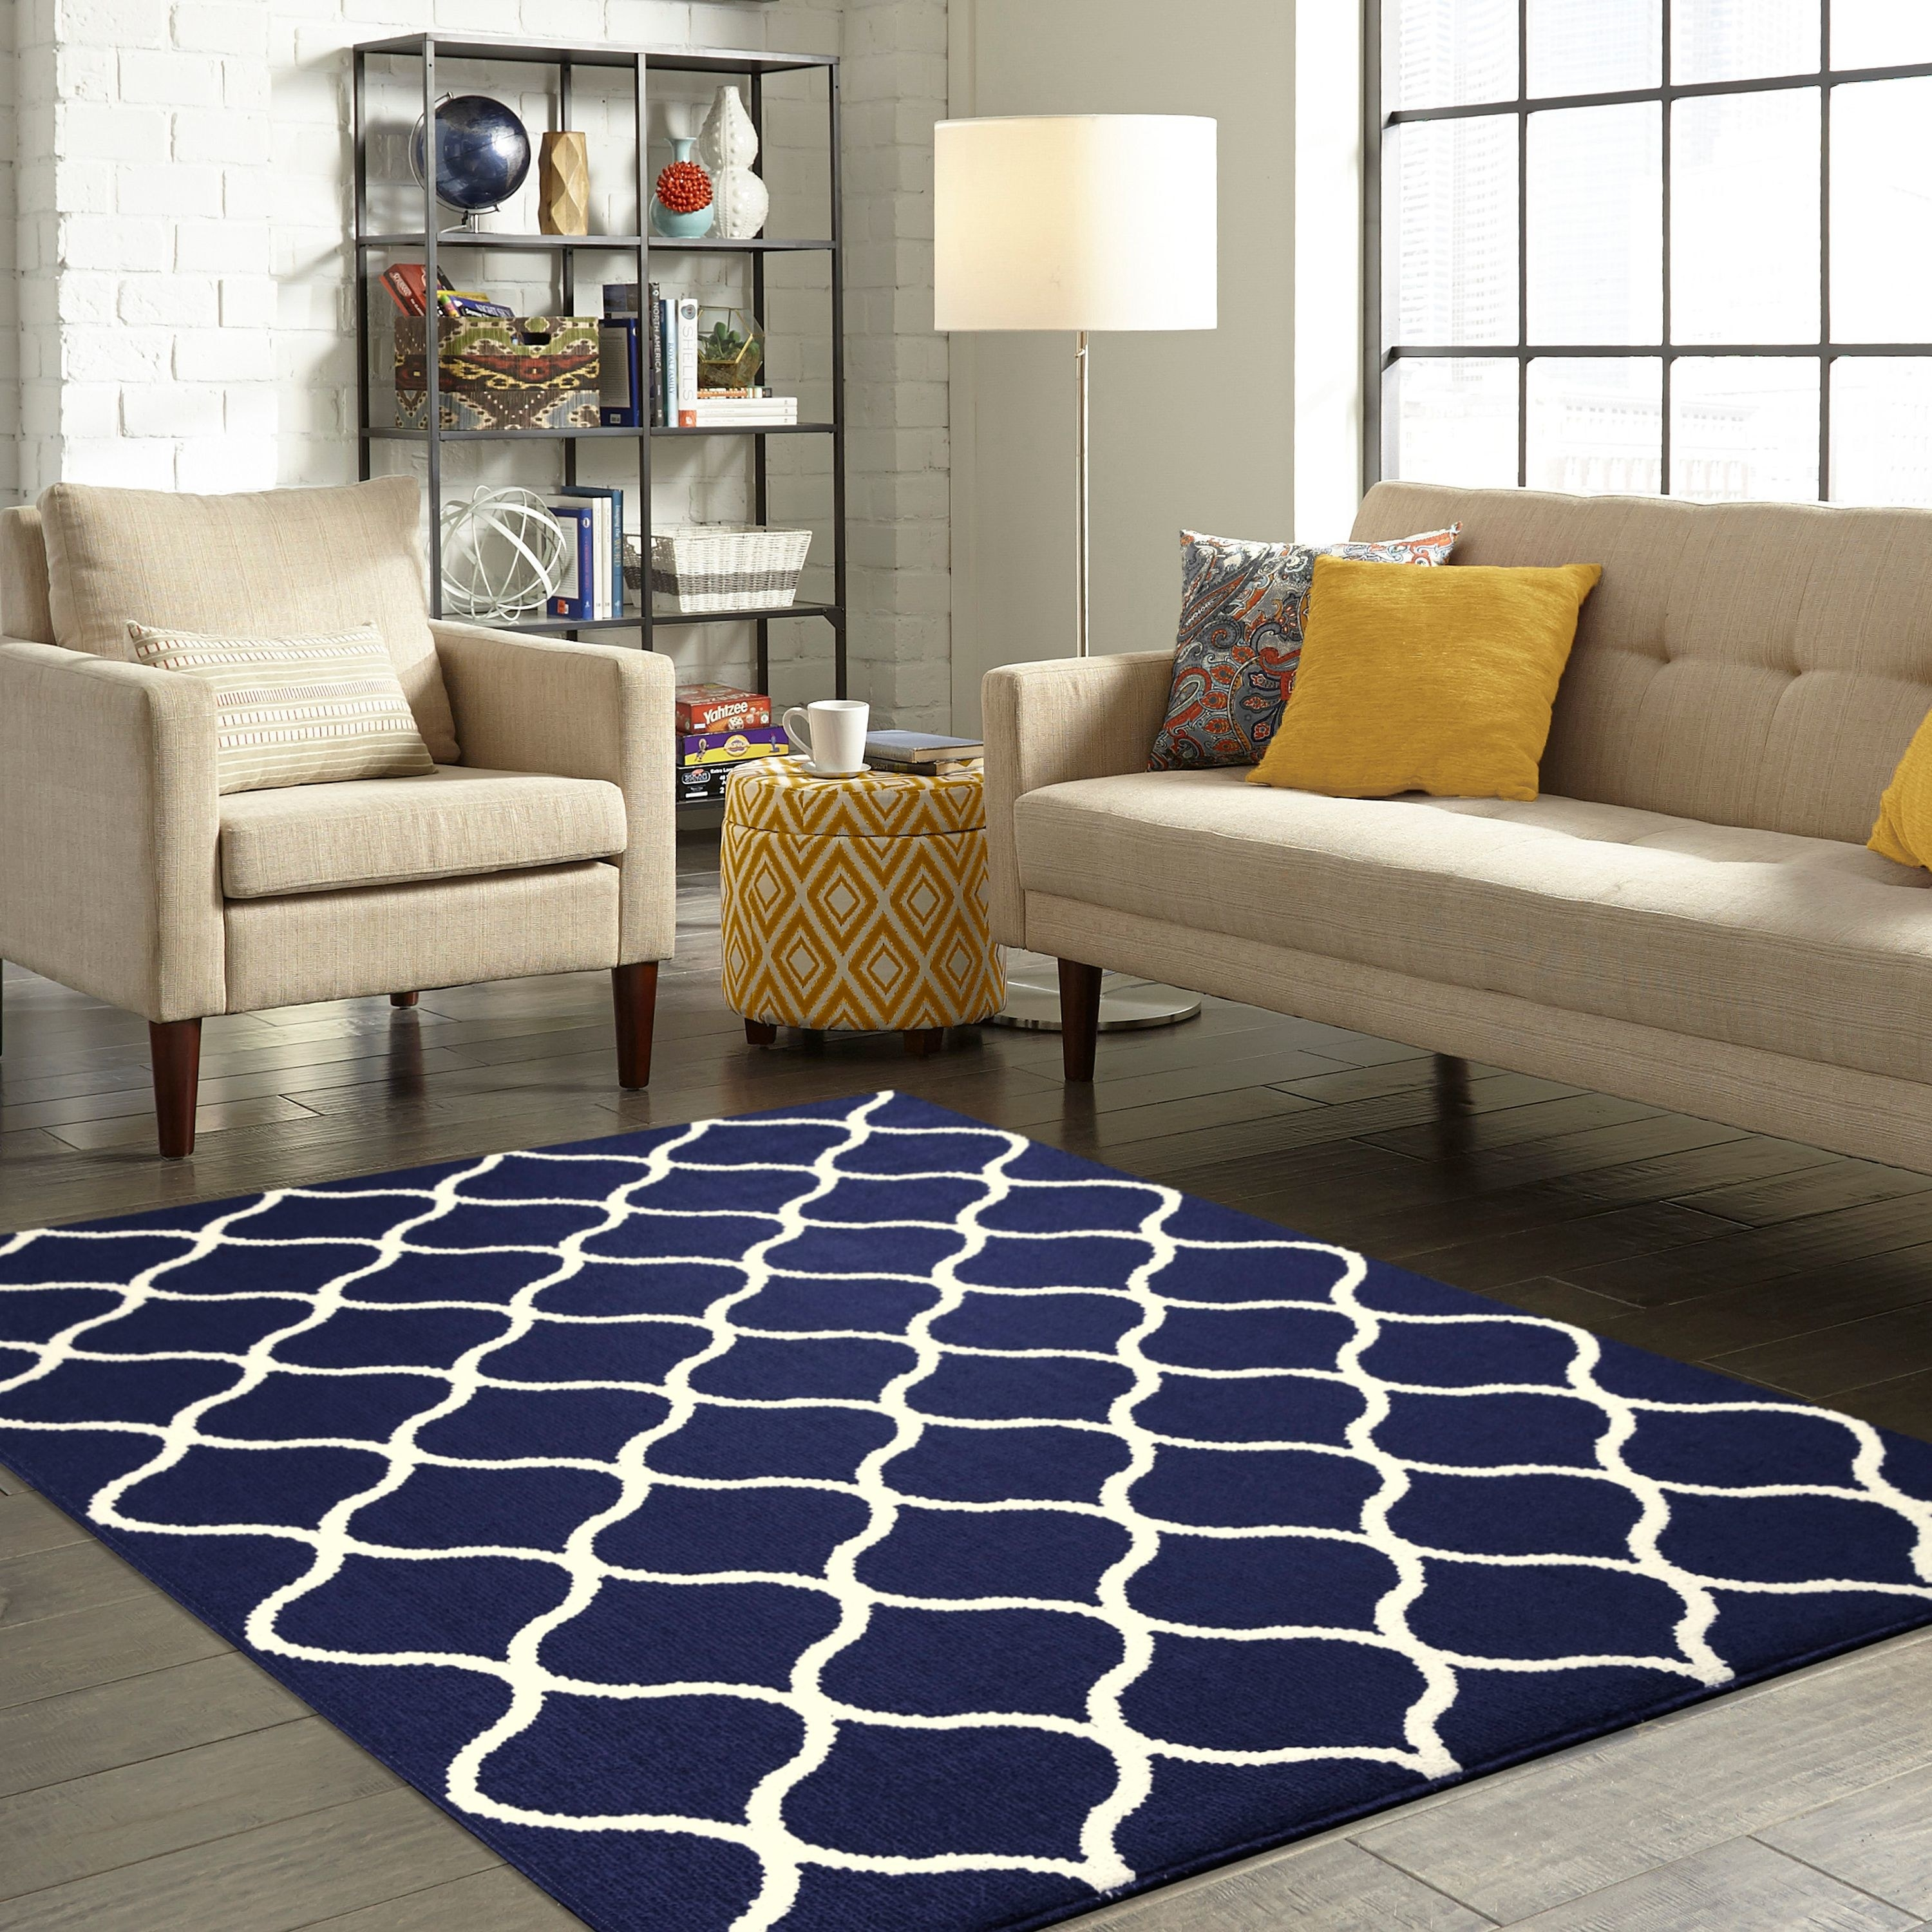 A blue rug with white detailing in a home